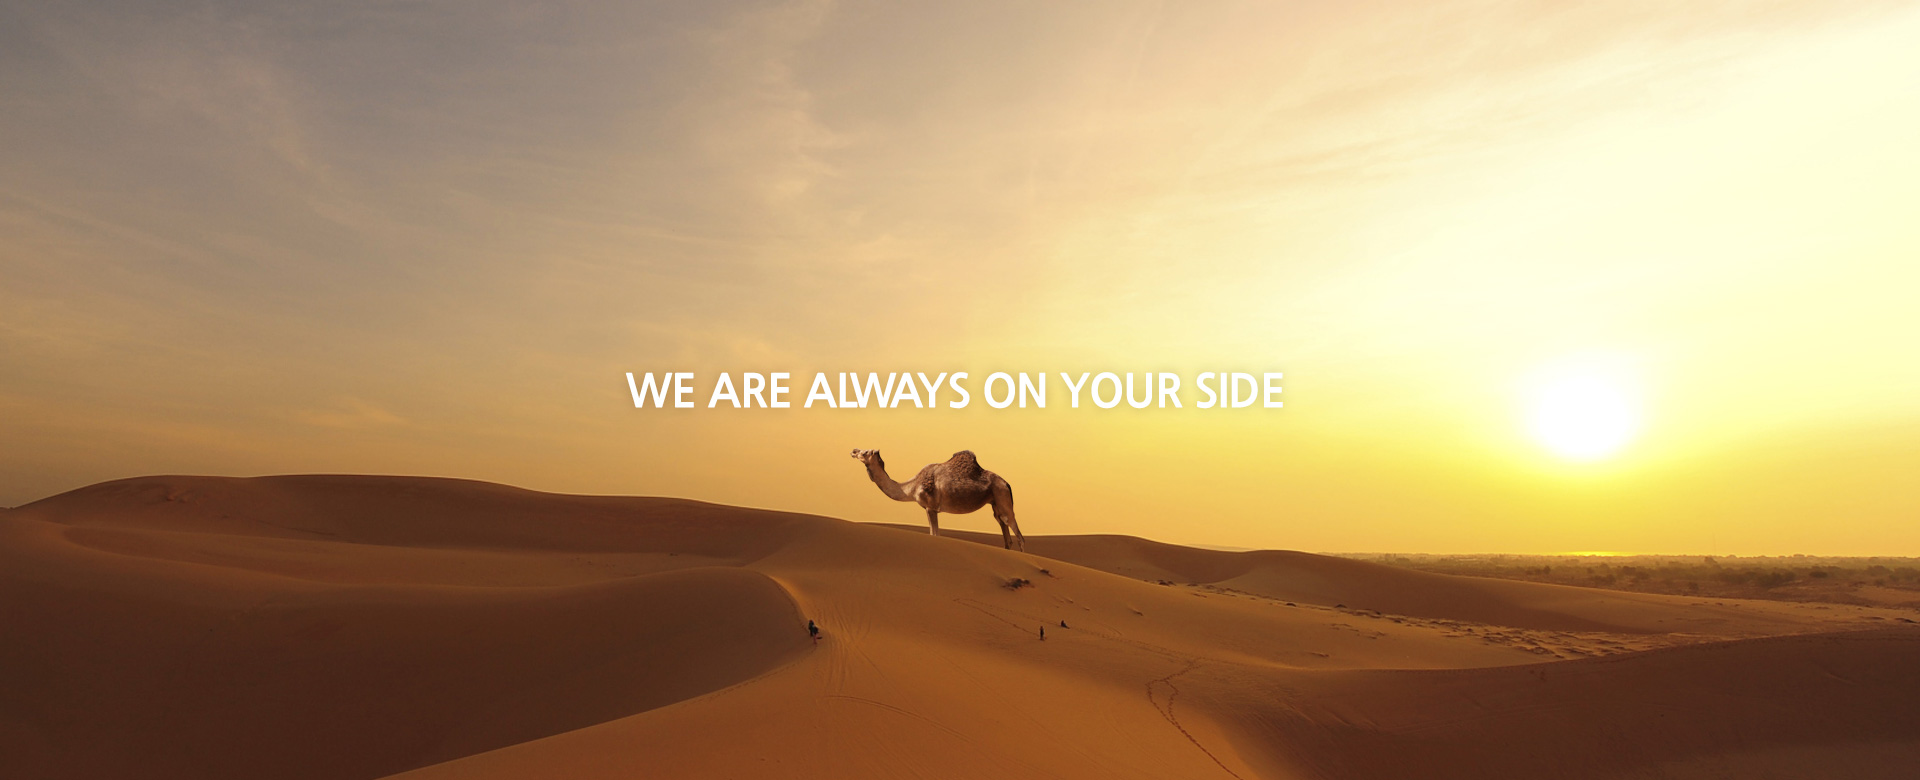 We are always on your side